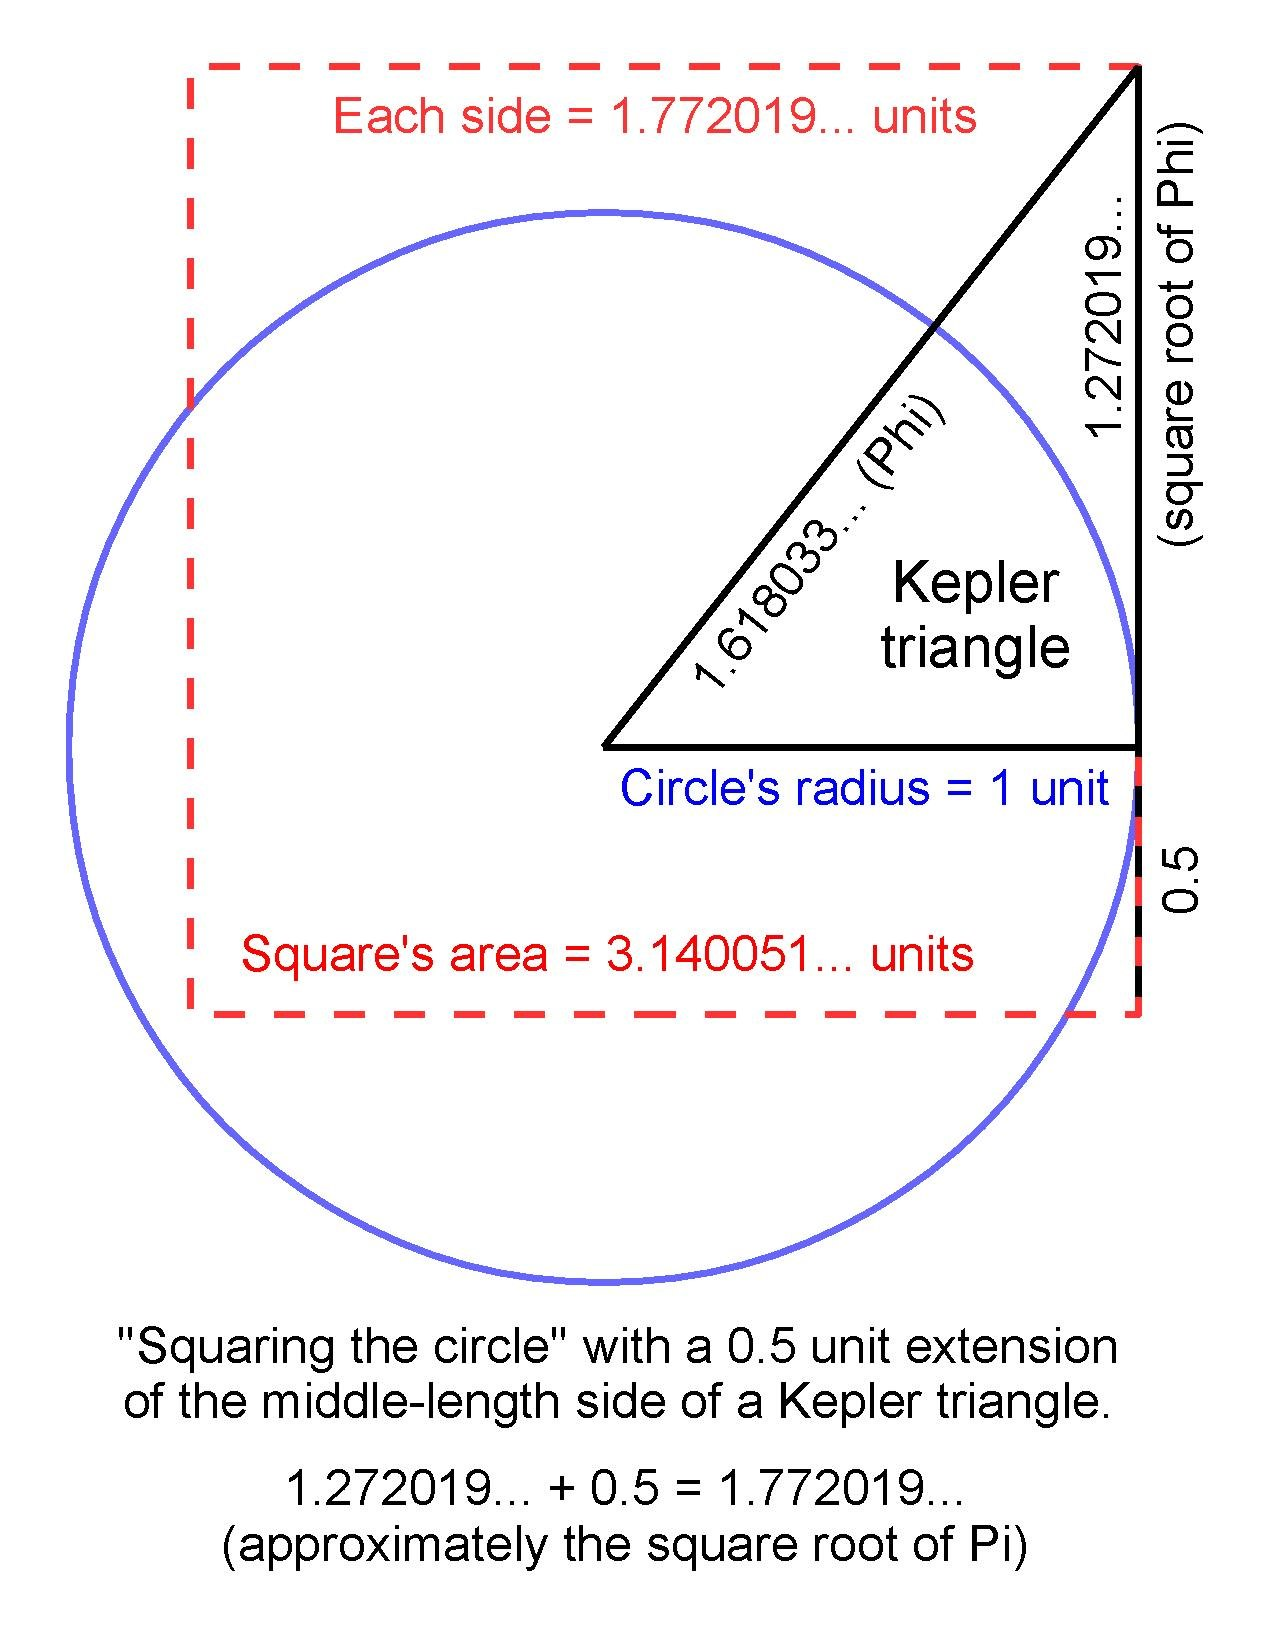 File:Using a Kepler triangle to construct a square that has about the same  area as a given circle.pdf - Wikipedia